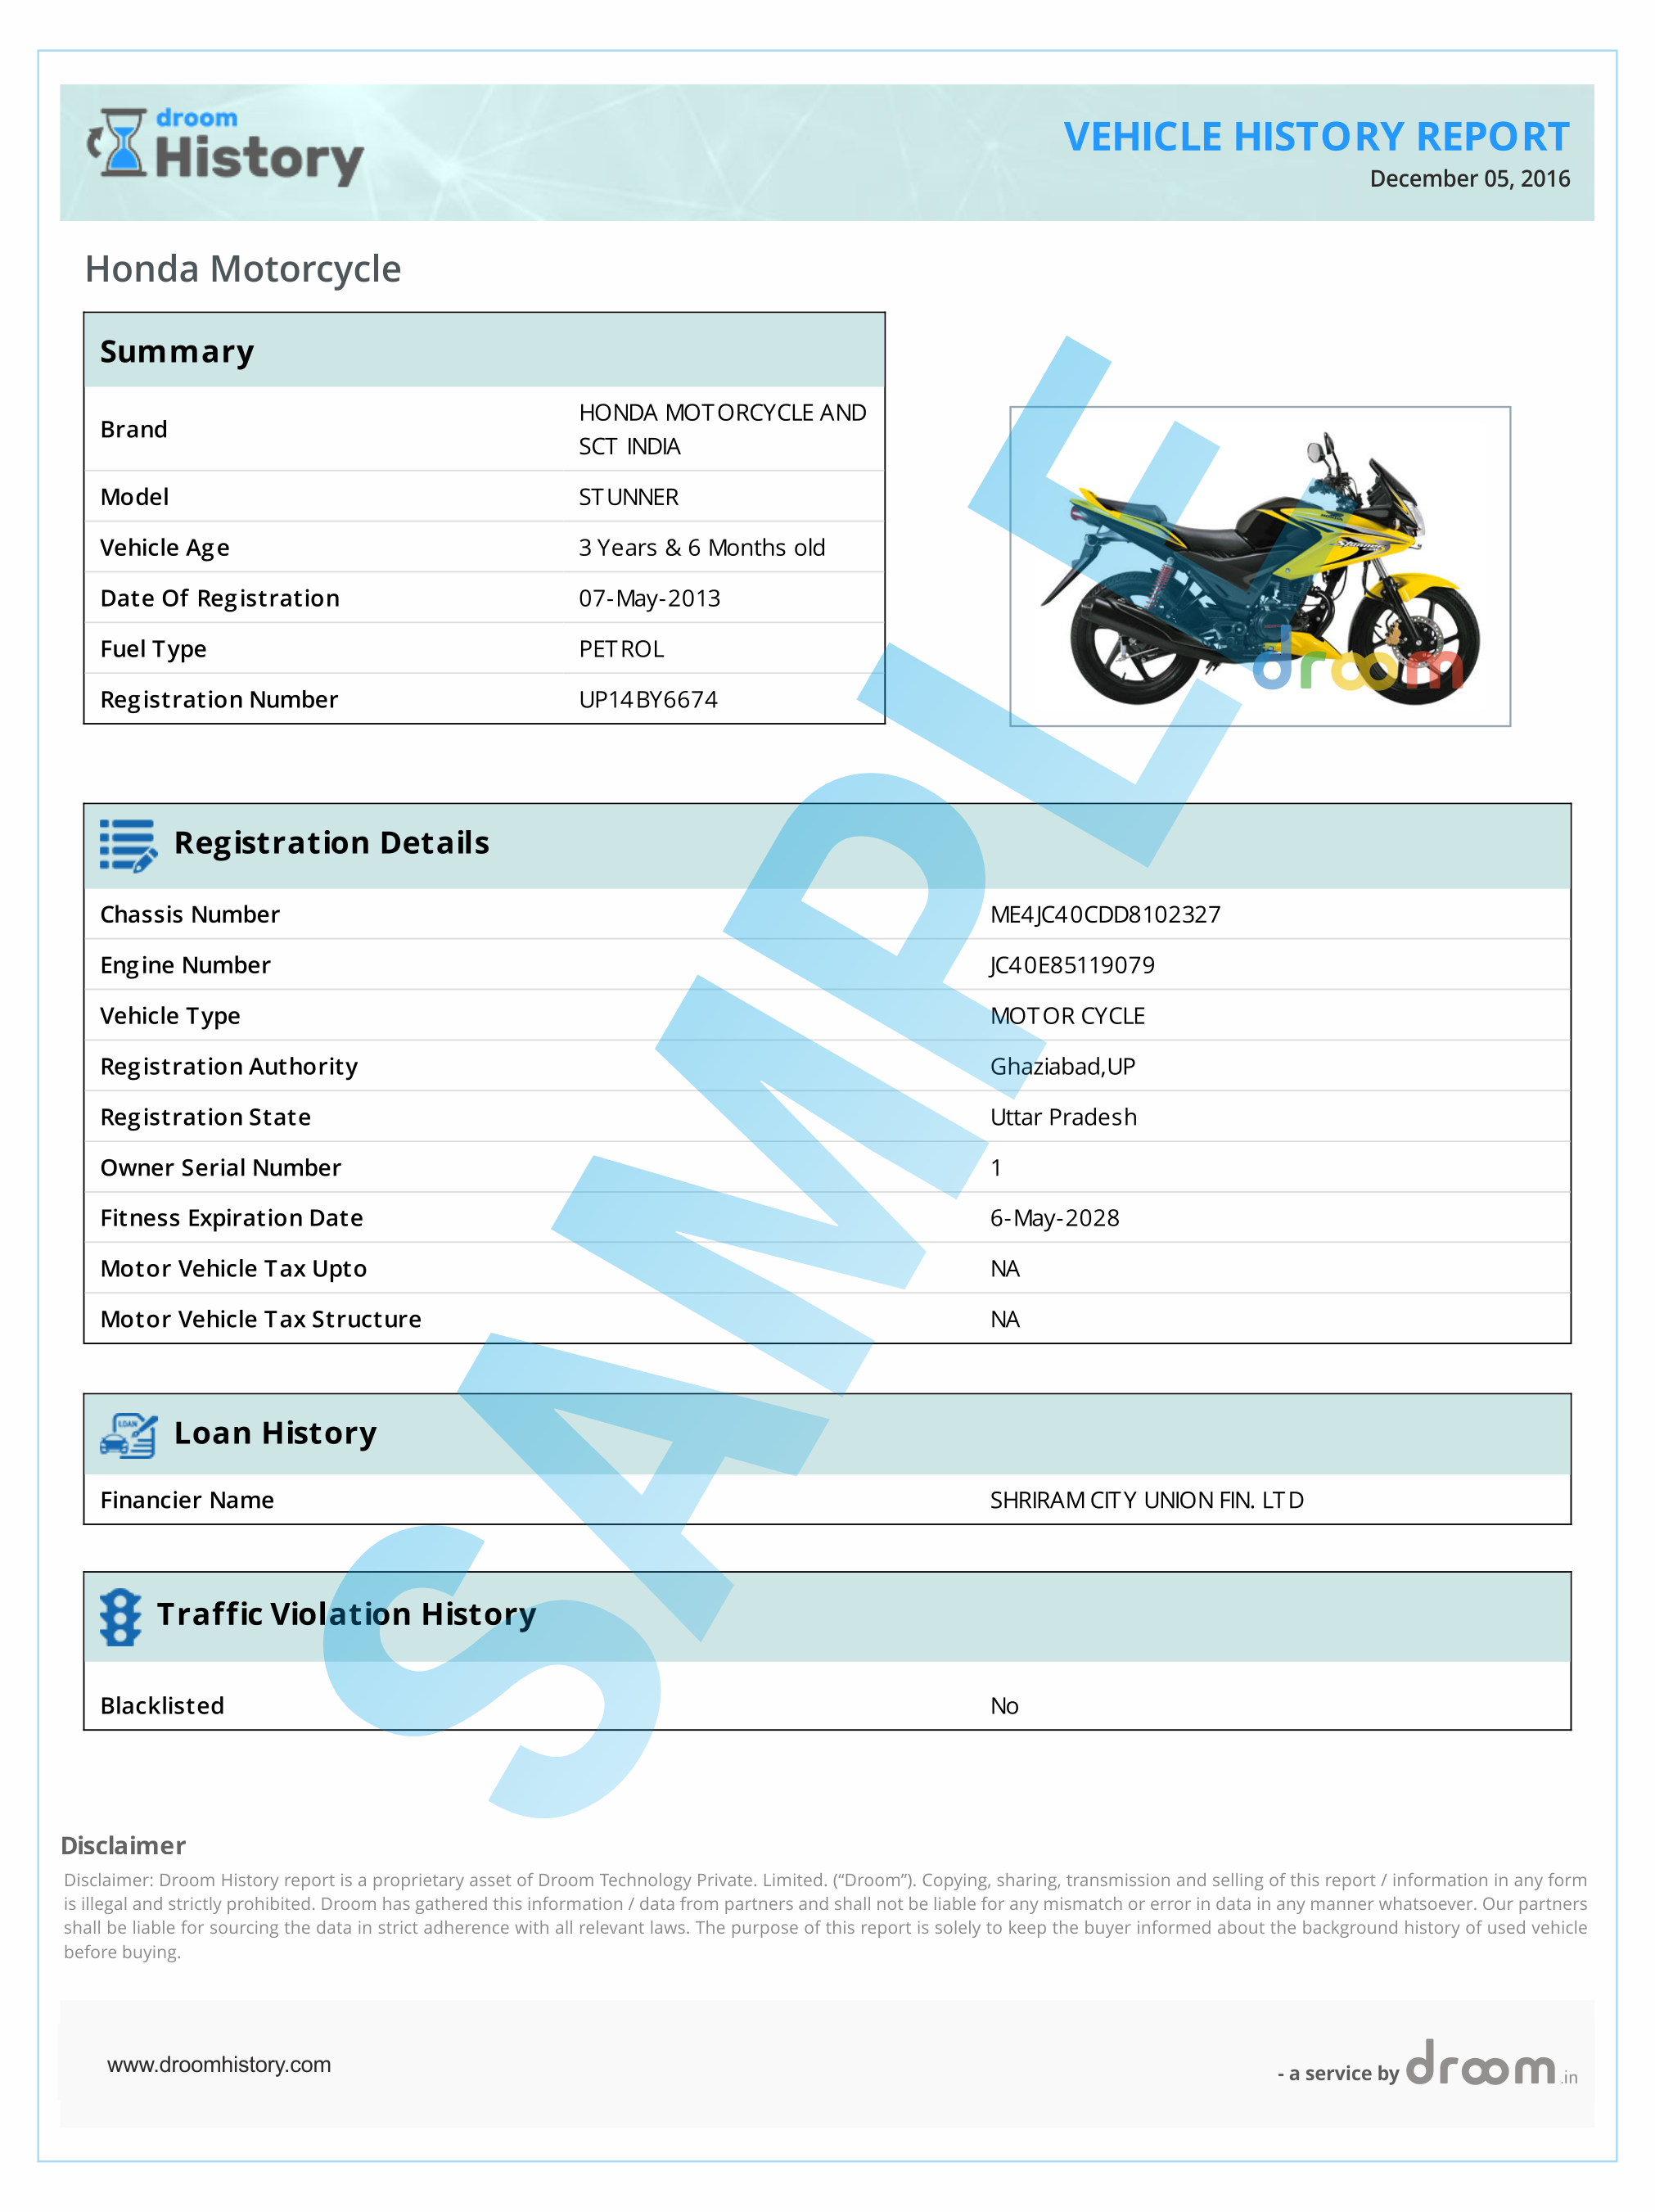 Check Rto Vehicle Information Online Via A History Tool Our Data Science Based Tool Contains 200 Mi Data Of Vehicle Registration Details In India